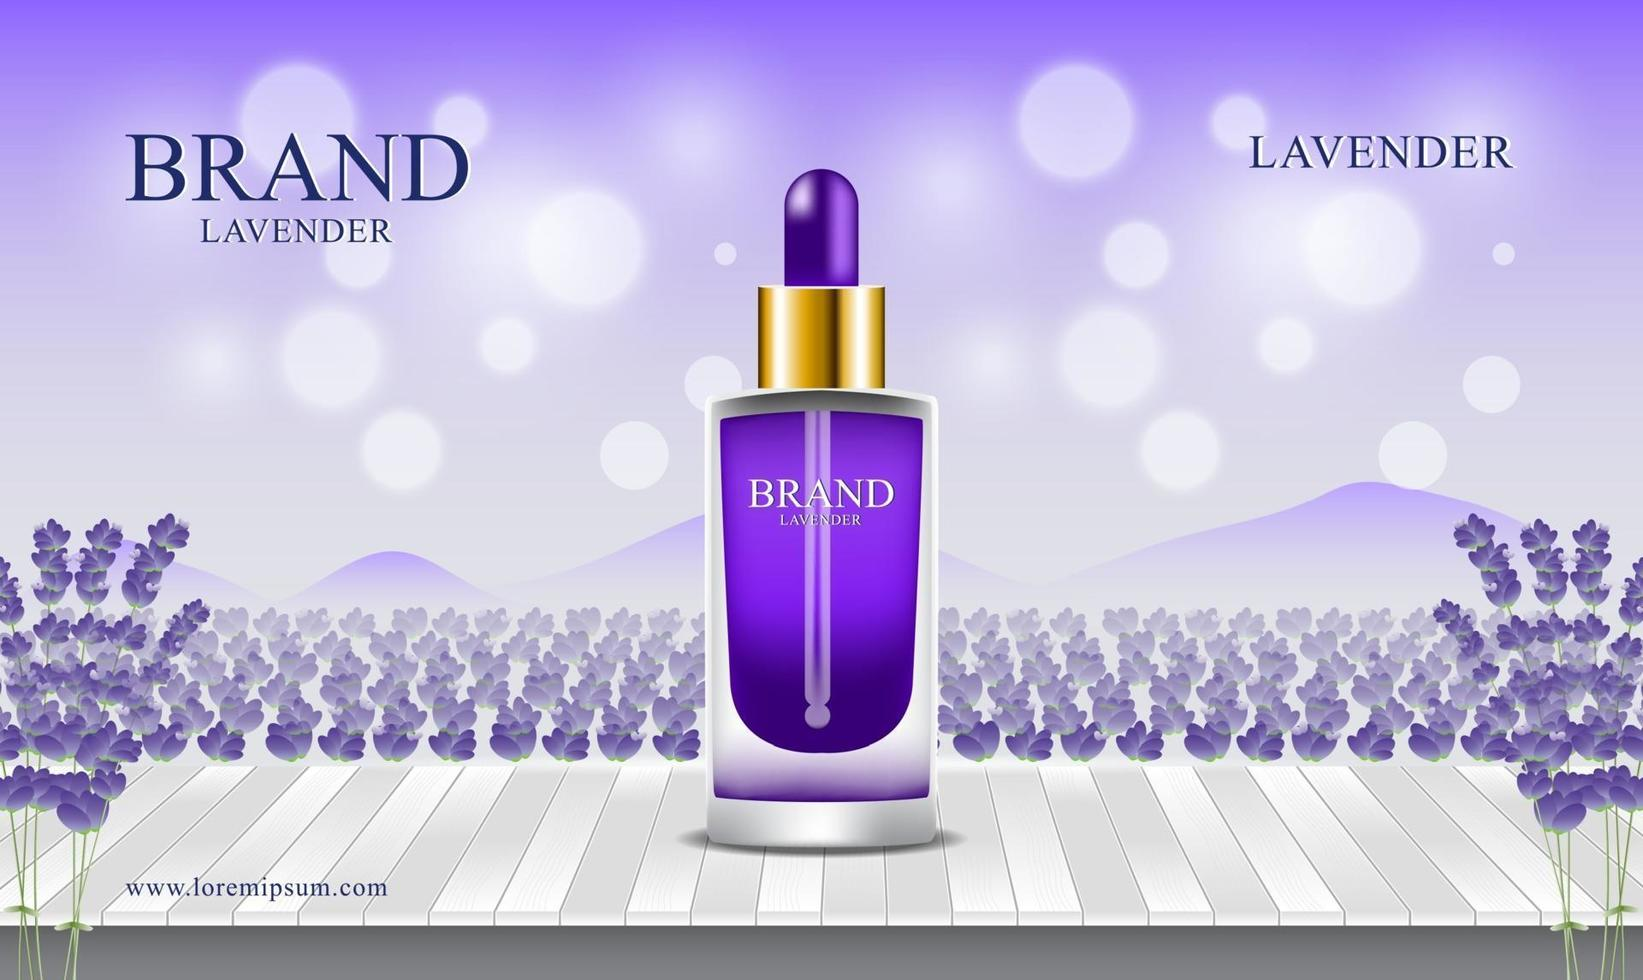 Lavender fields and wooden floors background  for cosmetics and perfume natural product illustration vector